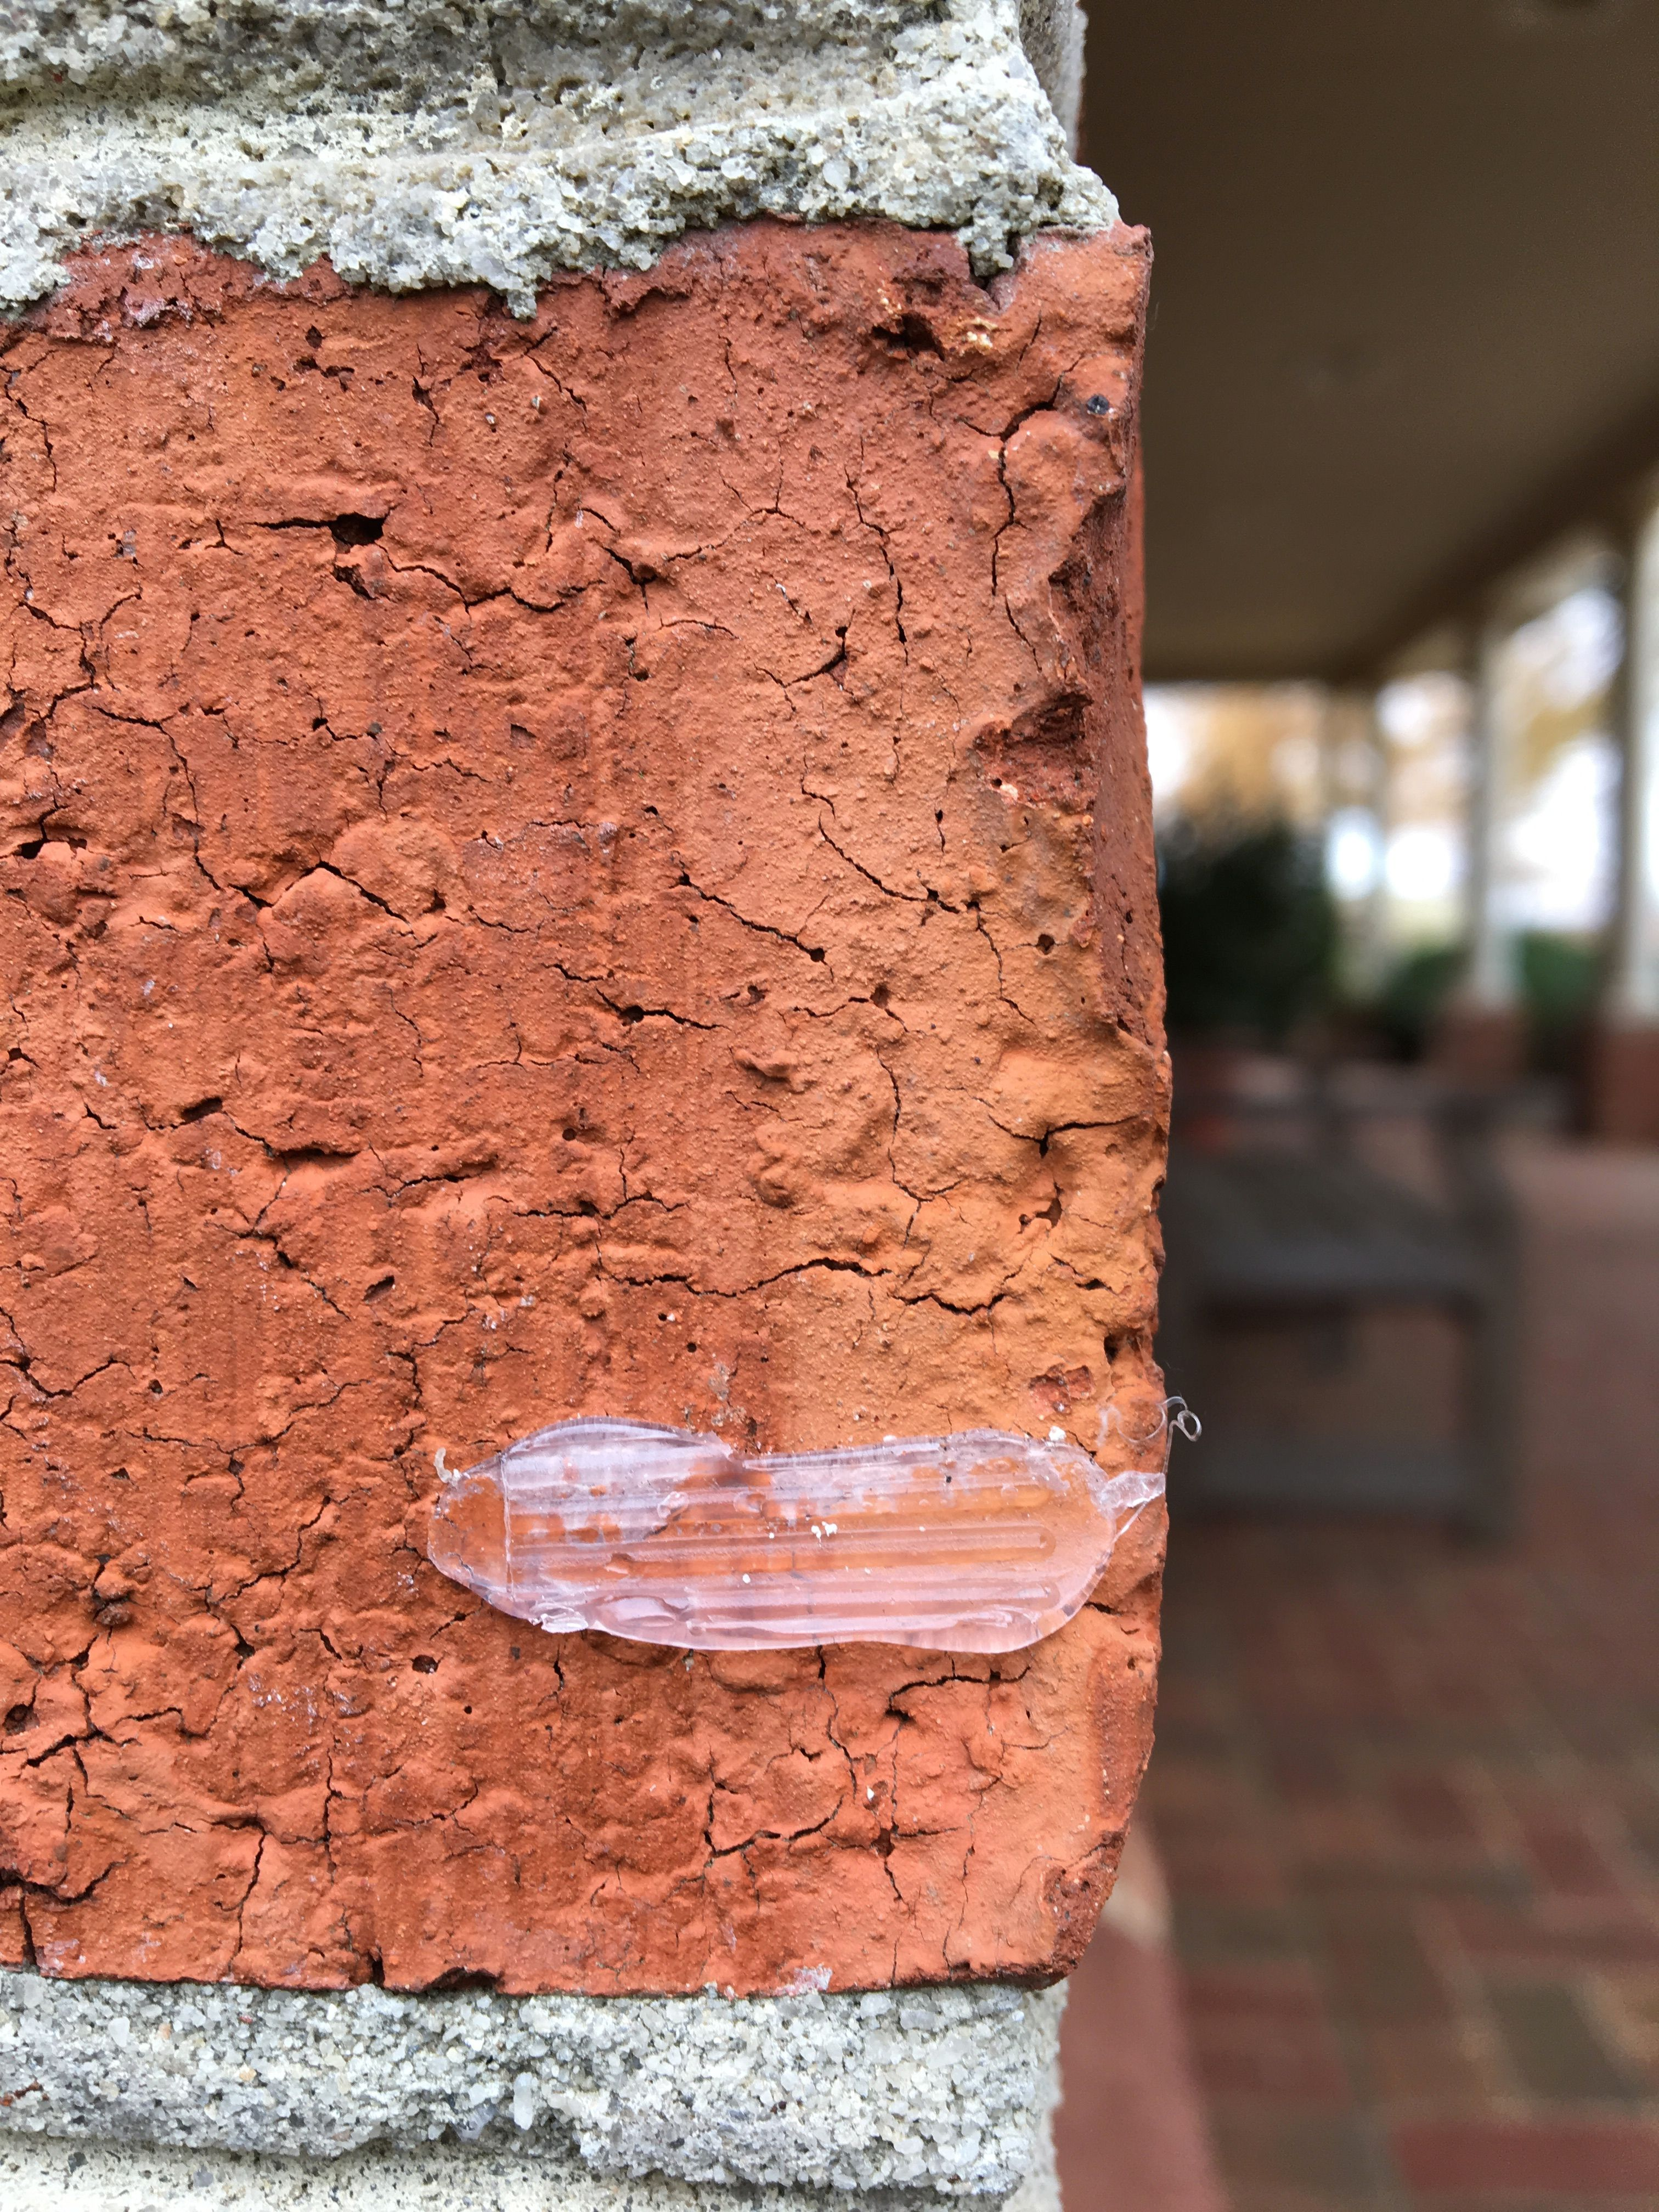 How To Remove Glue From Brick When You Take Down Christmas